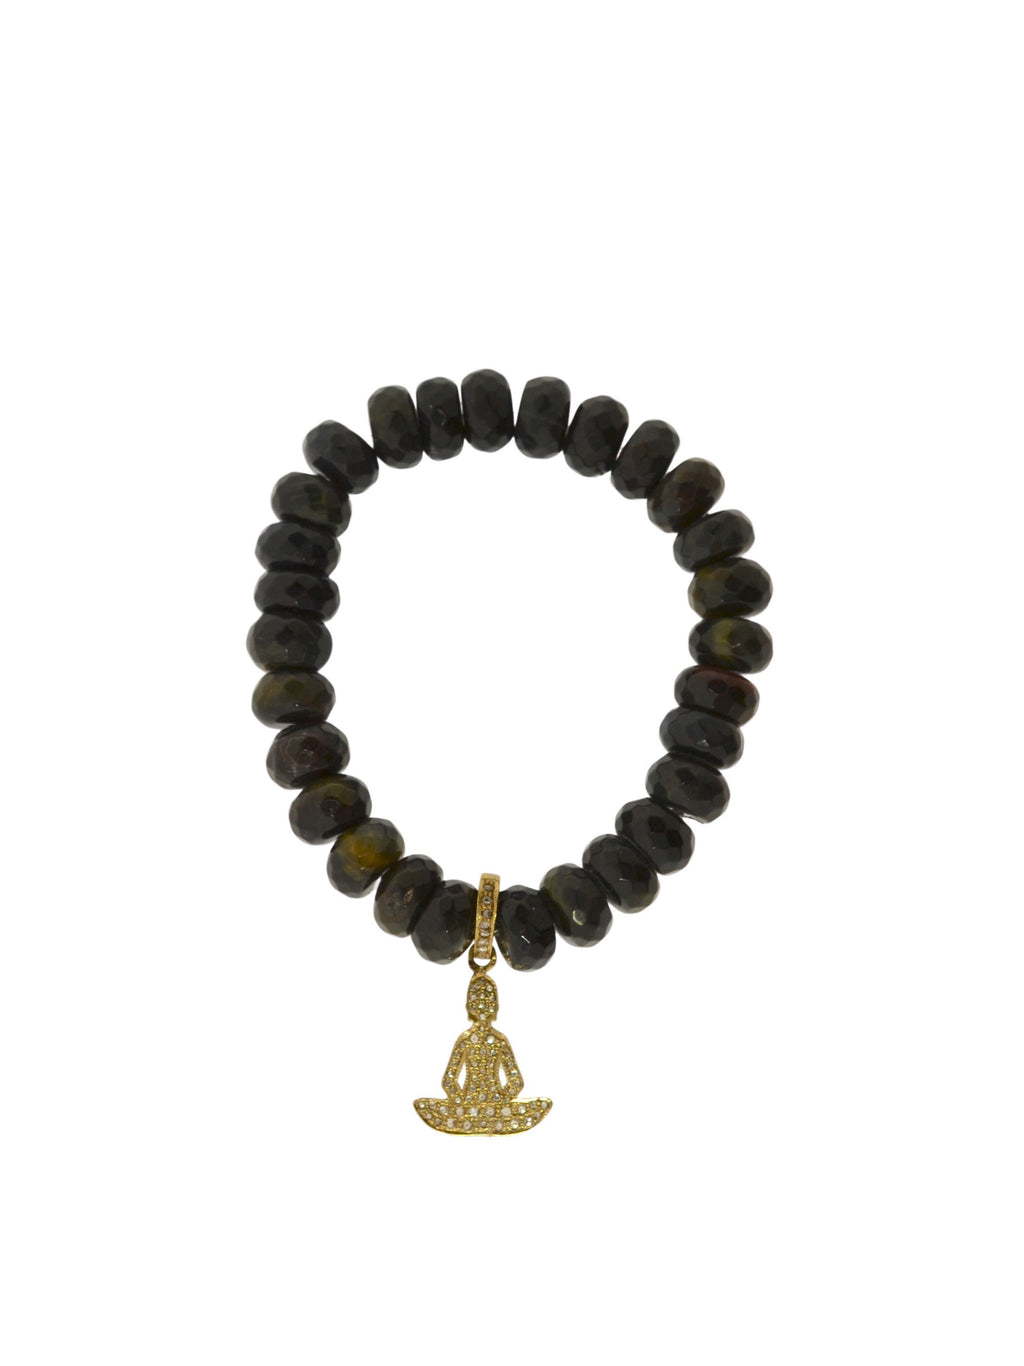 Pave Diamond Brass Buddha Charm on Blue Tigers Eye Beads